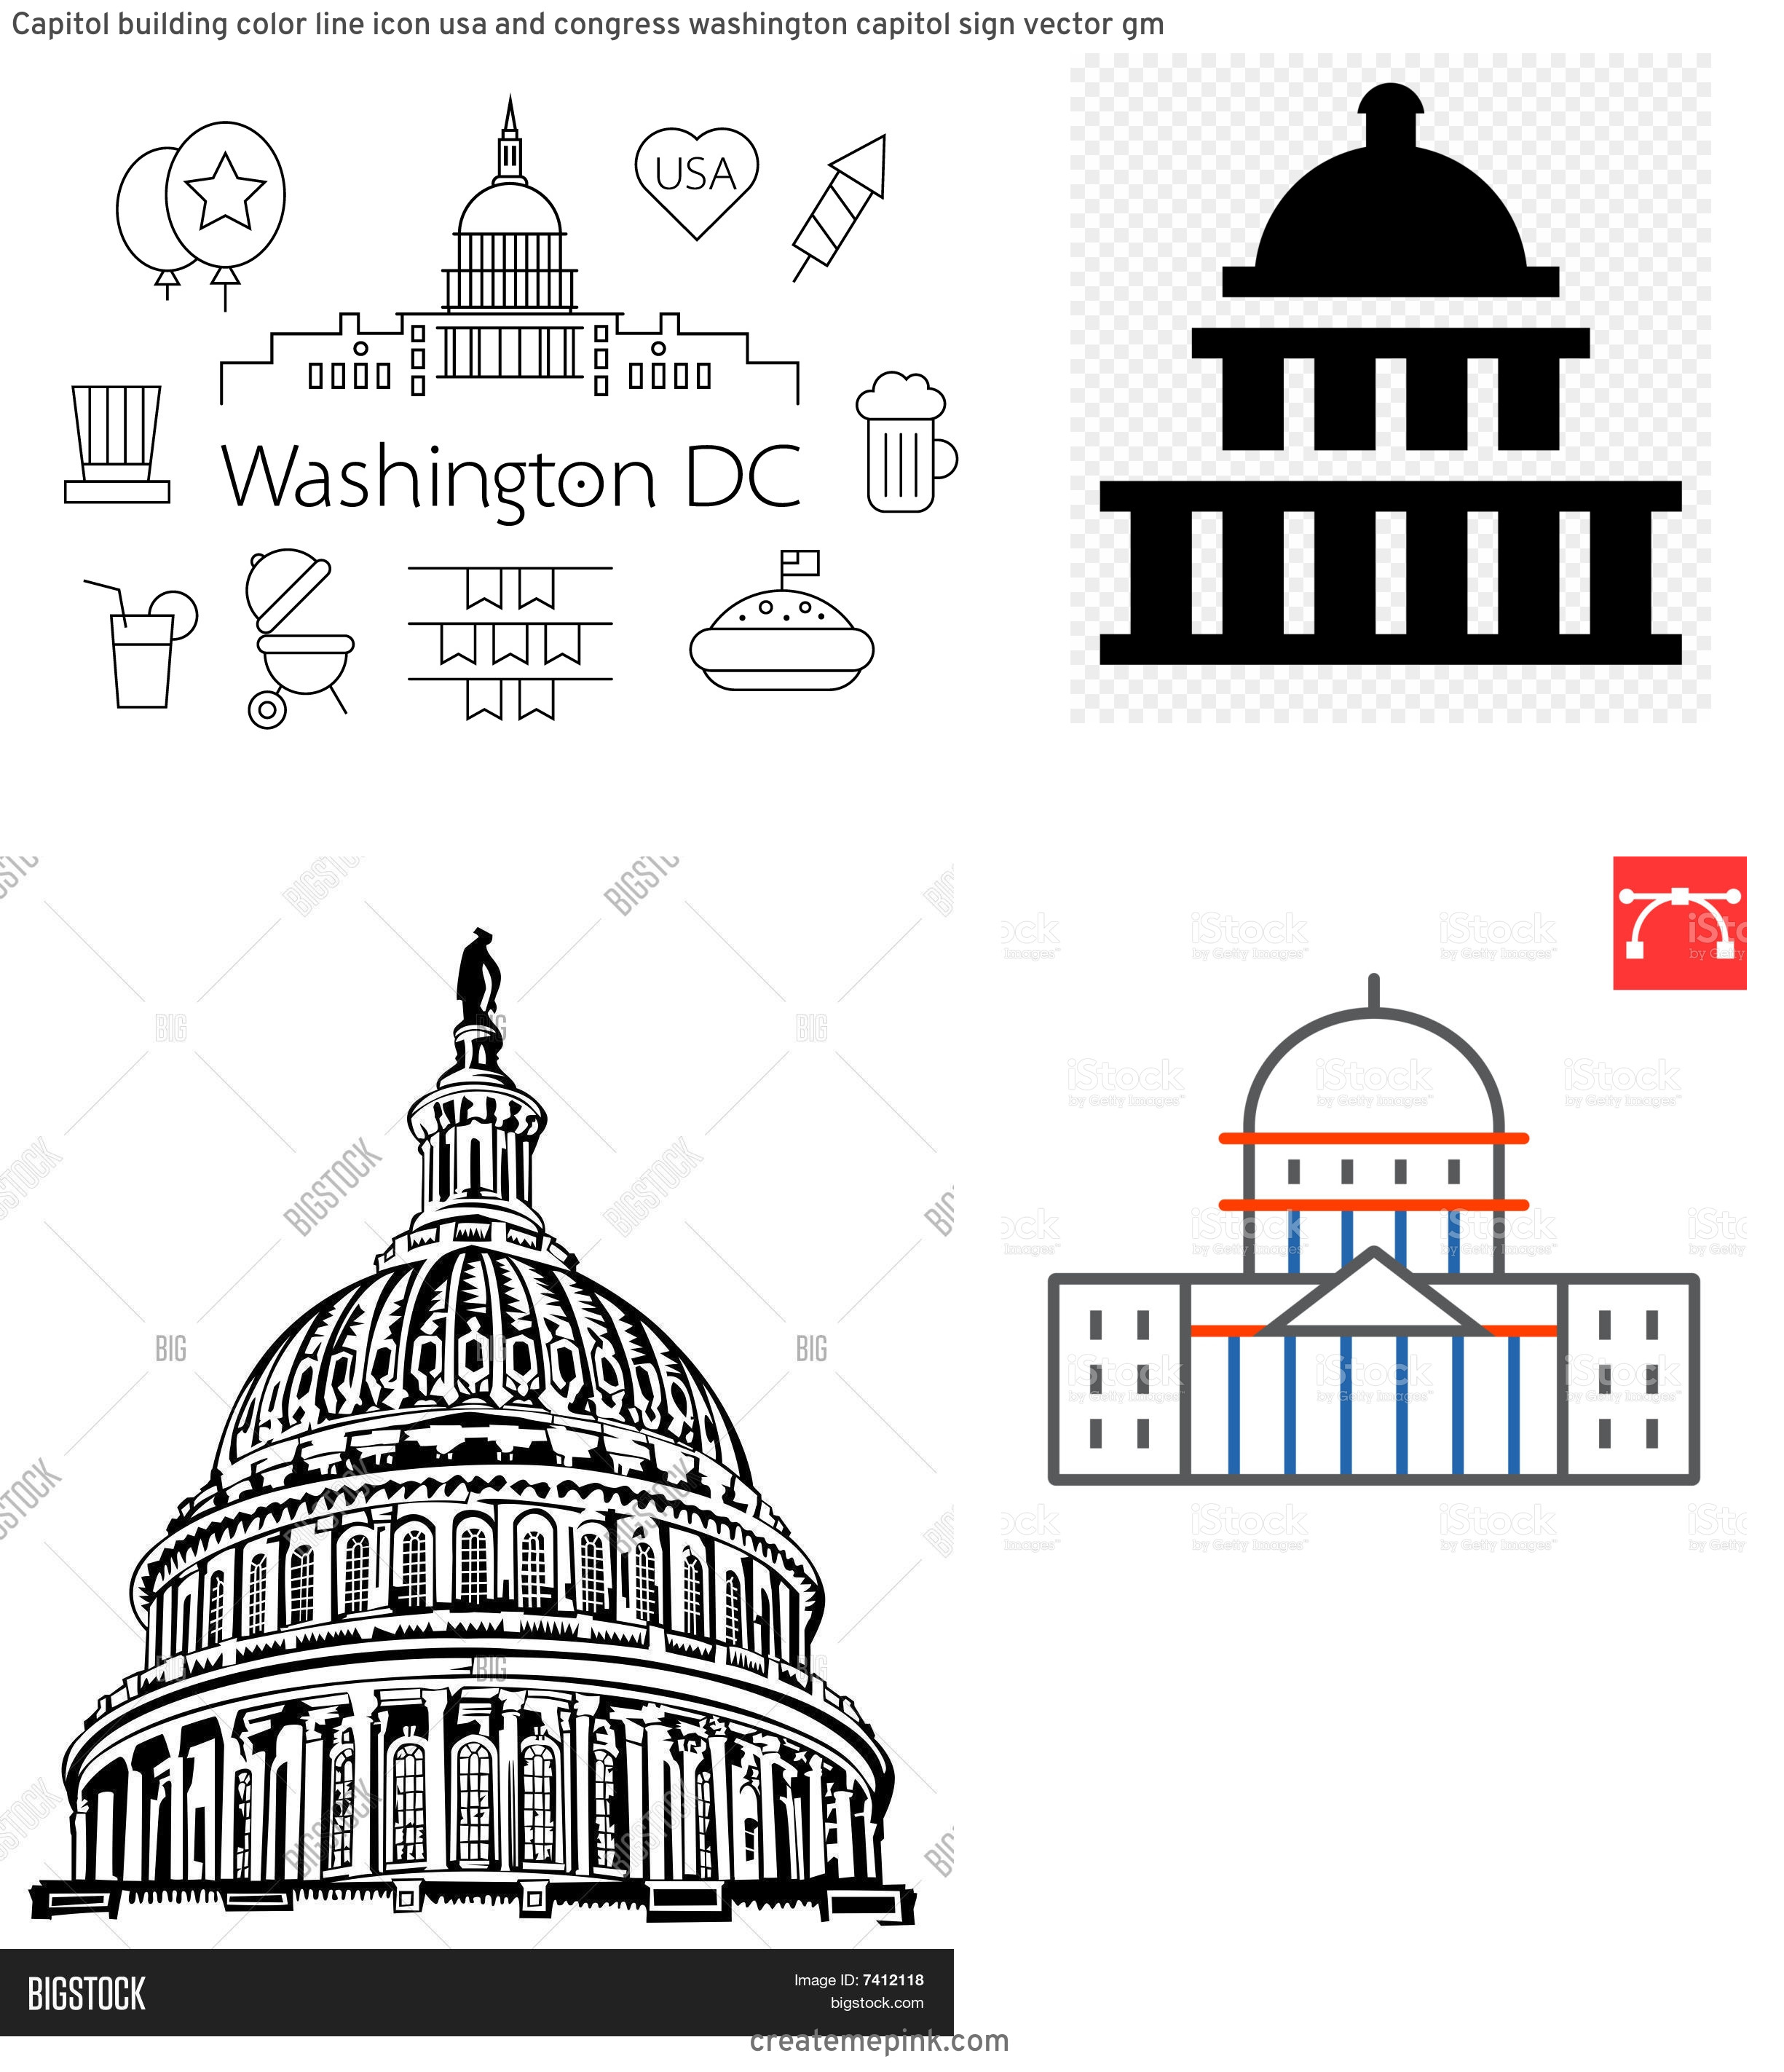 US Capital Vector Line Drawing: Capitol Building Color Line Icon Usa And Congress Washington Capitol Sign Vector Gm